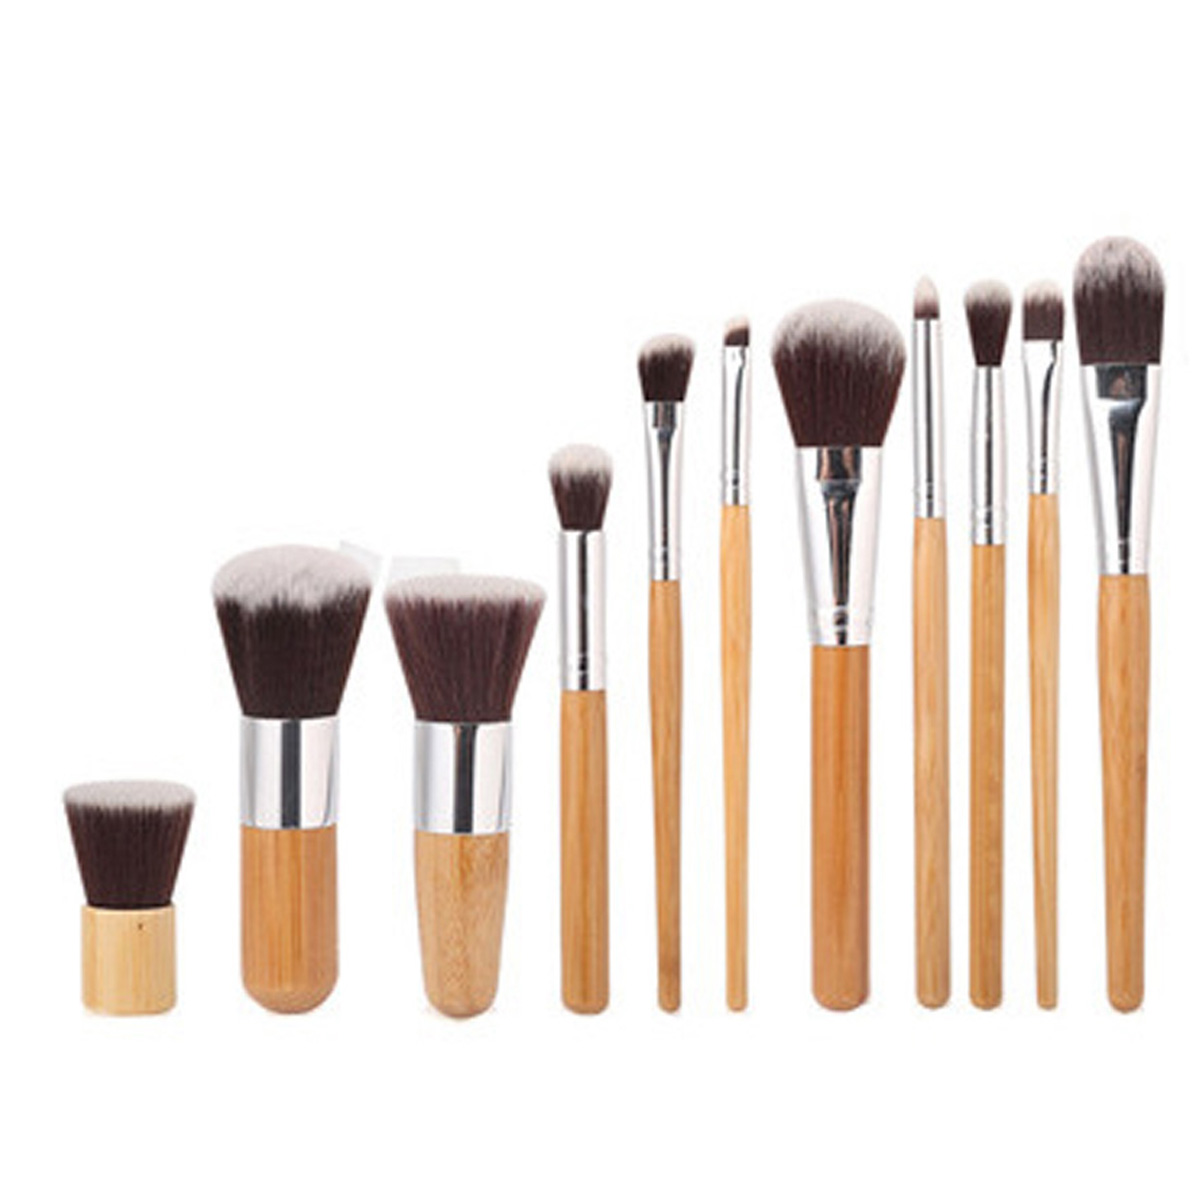 Makeup Brushes Set Cosmetics Foundation Bamboo Make Up Brush Tools Kit for Powder Blusher Eye Shadow Eyeliner открытые системы журнал publish 04 2014